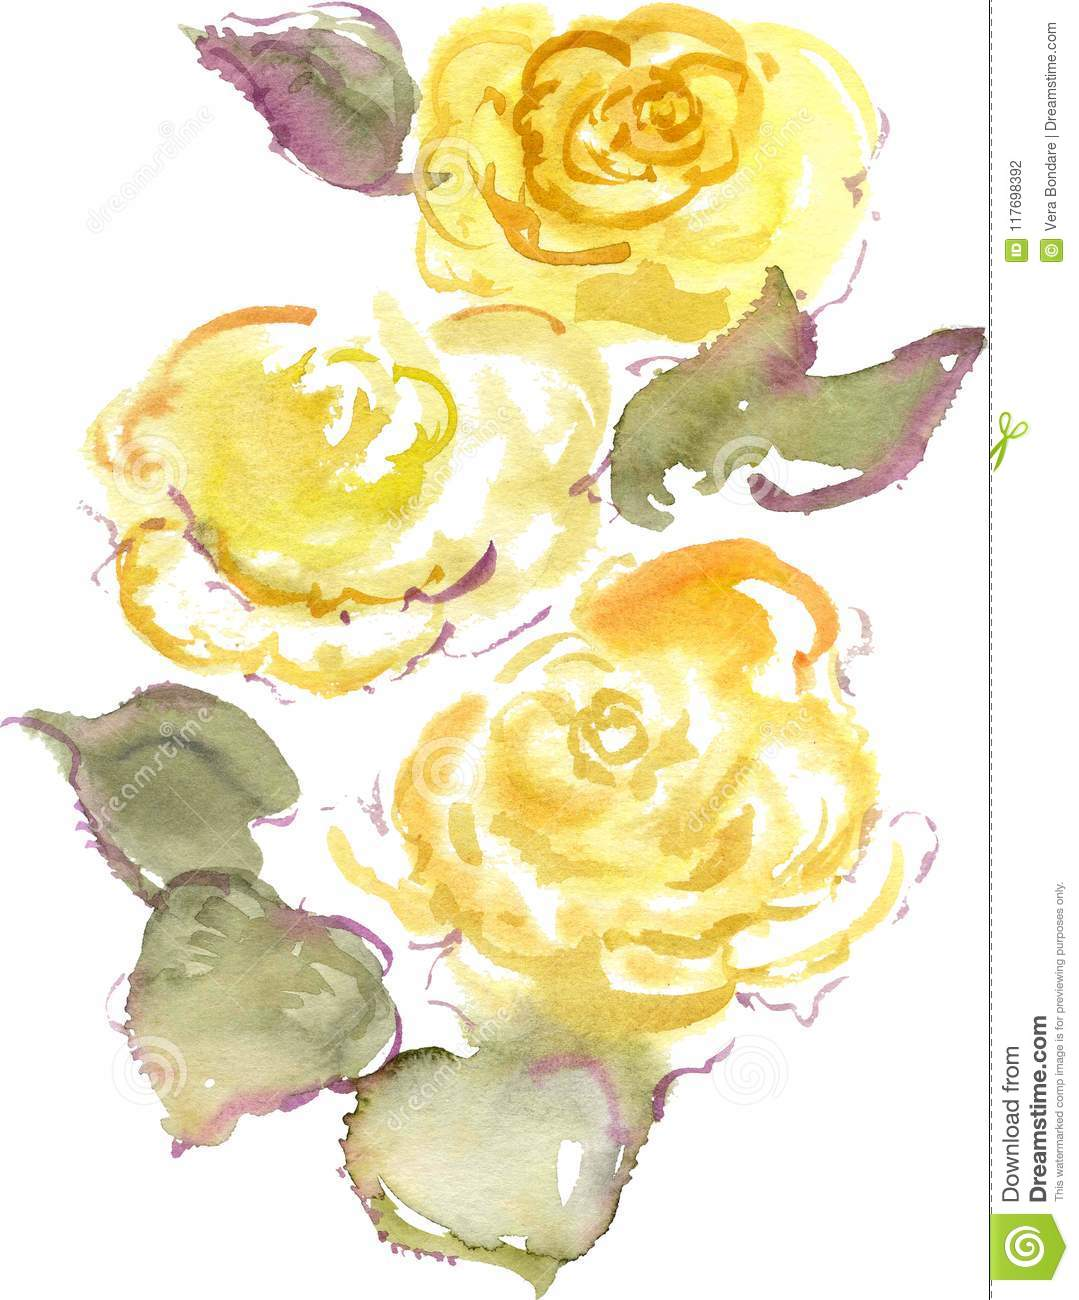 Watercolor Drawing Of Three Yellow Rose Buds Stock Photo